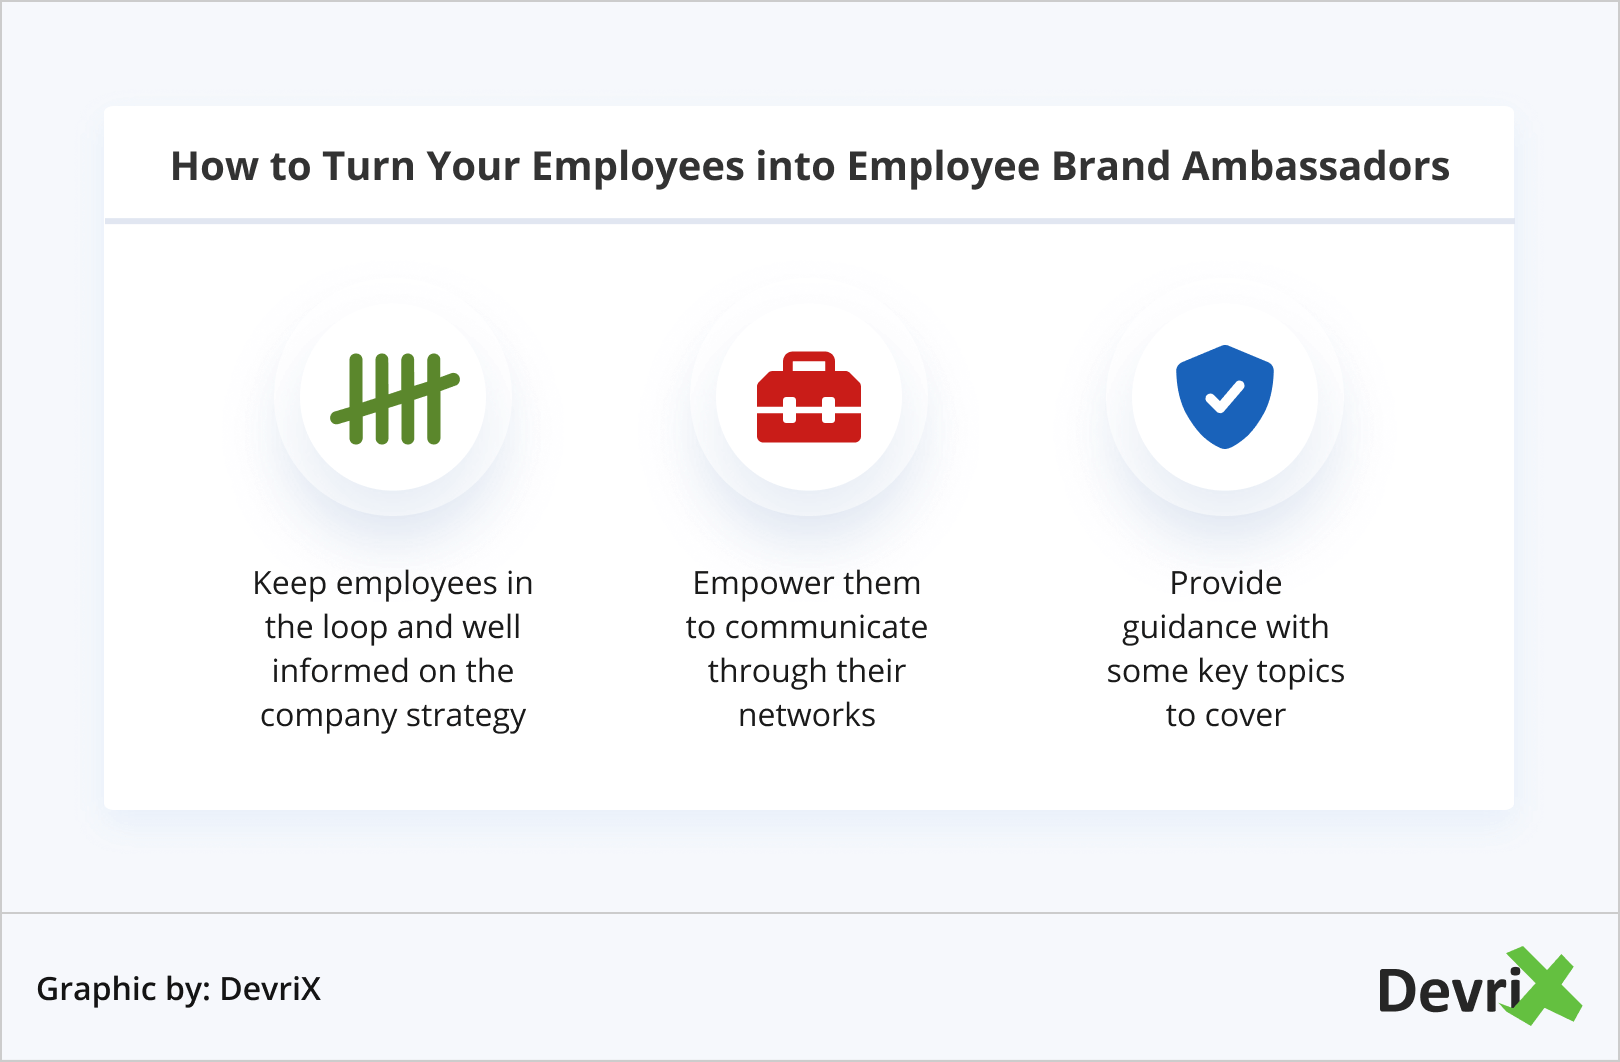 How to Turn Your Employees into Employee Brand Ambassadors